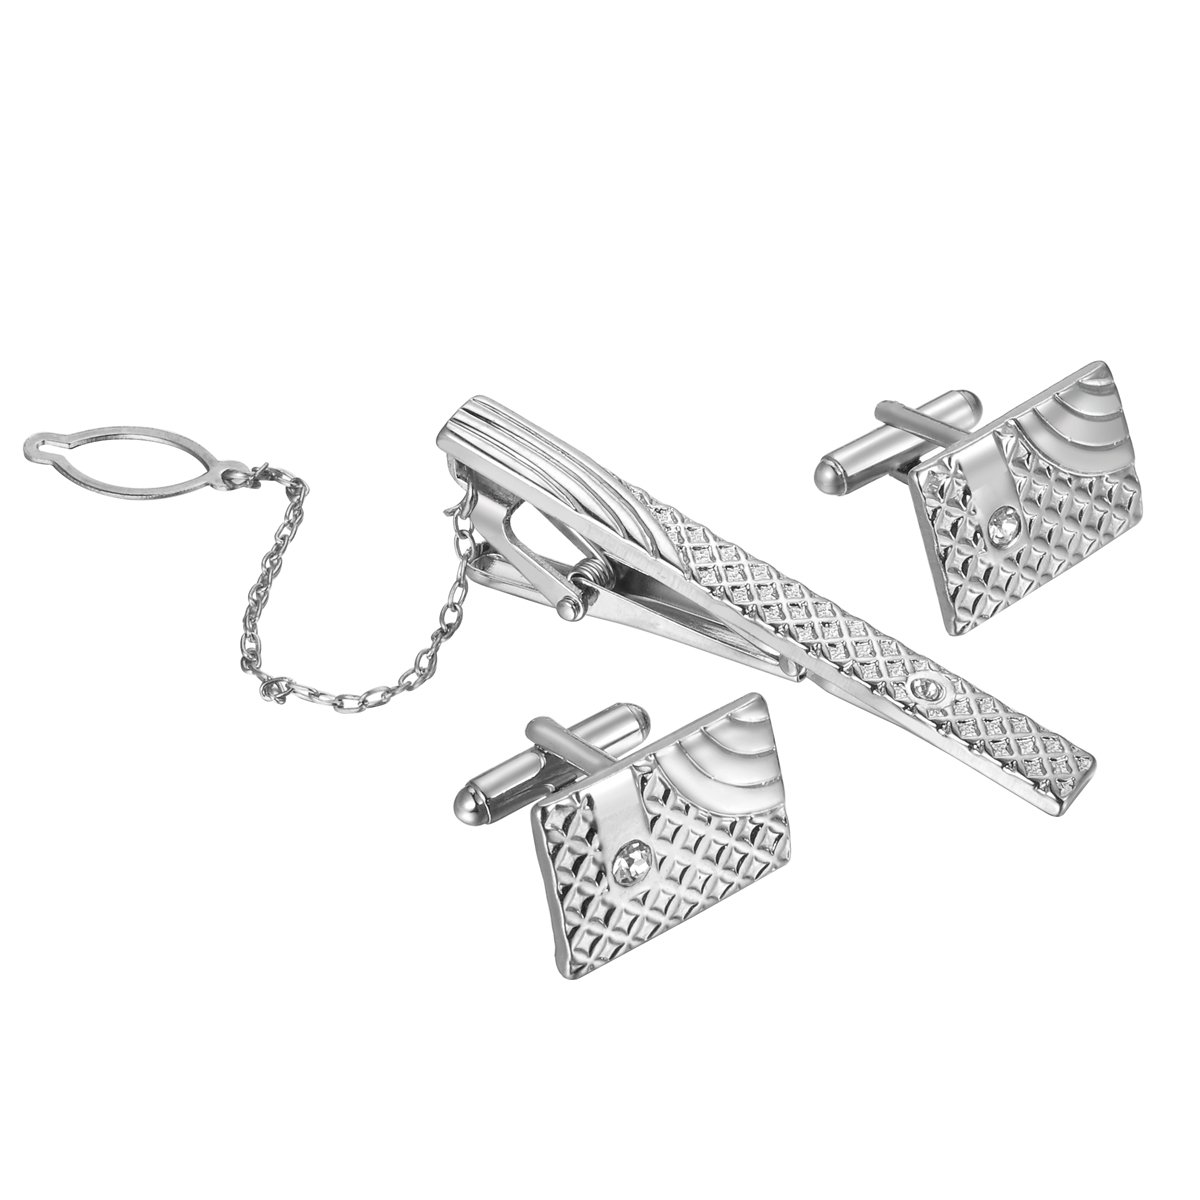 HooAMI Rectangle Grid Mens Fashion Necktie Tie Clip and Cufflink Set,Silver